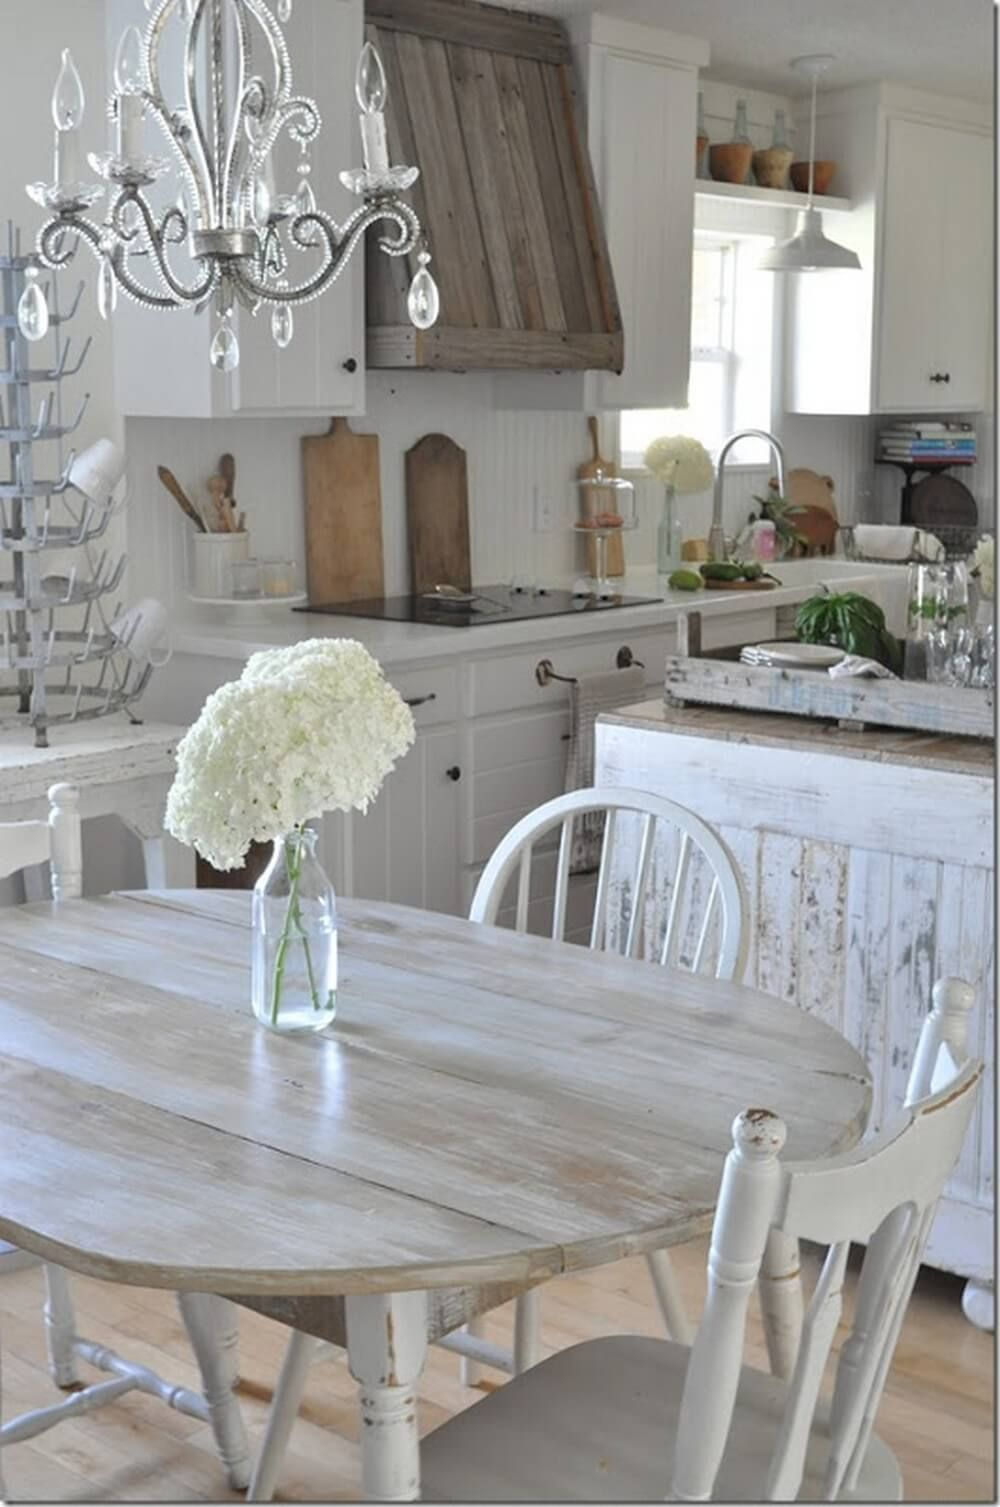 Kleine Küche Shabby 29 Gorgeous Shabby Chic Kitchen Decor Ideas That Are Comfy Cozy